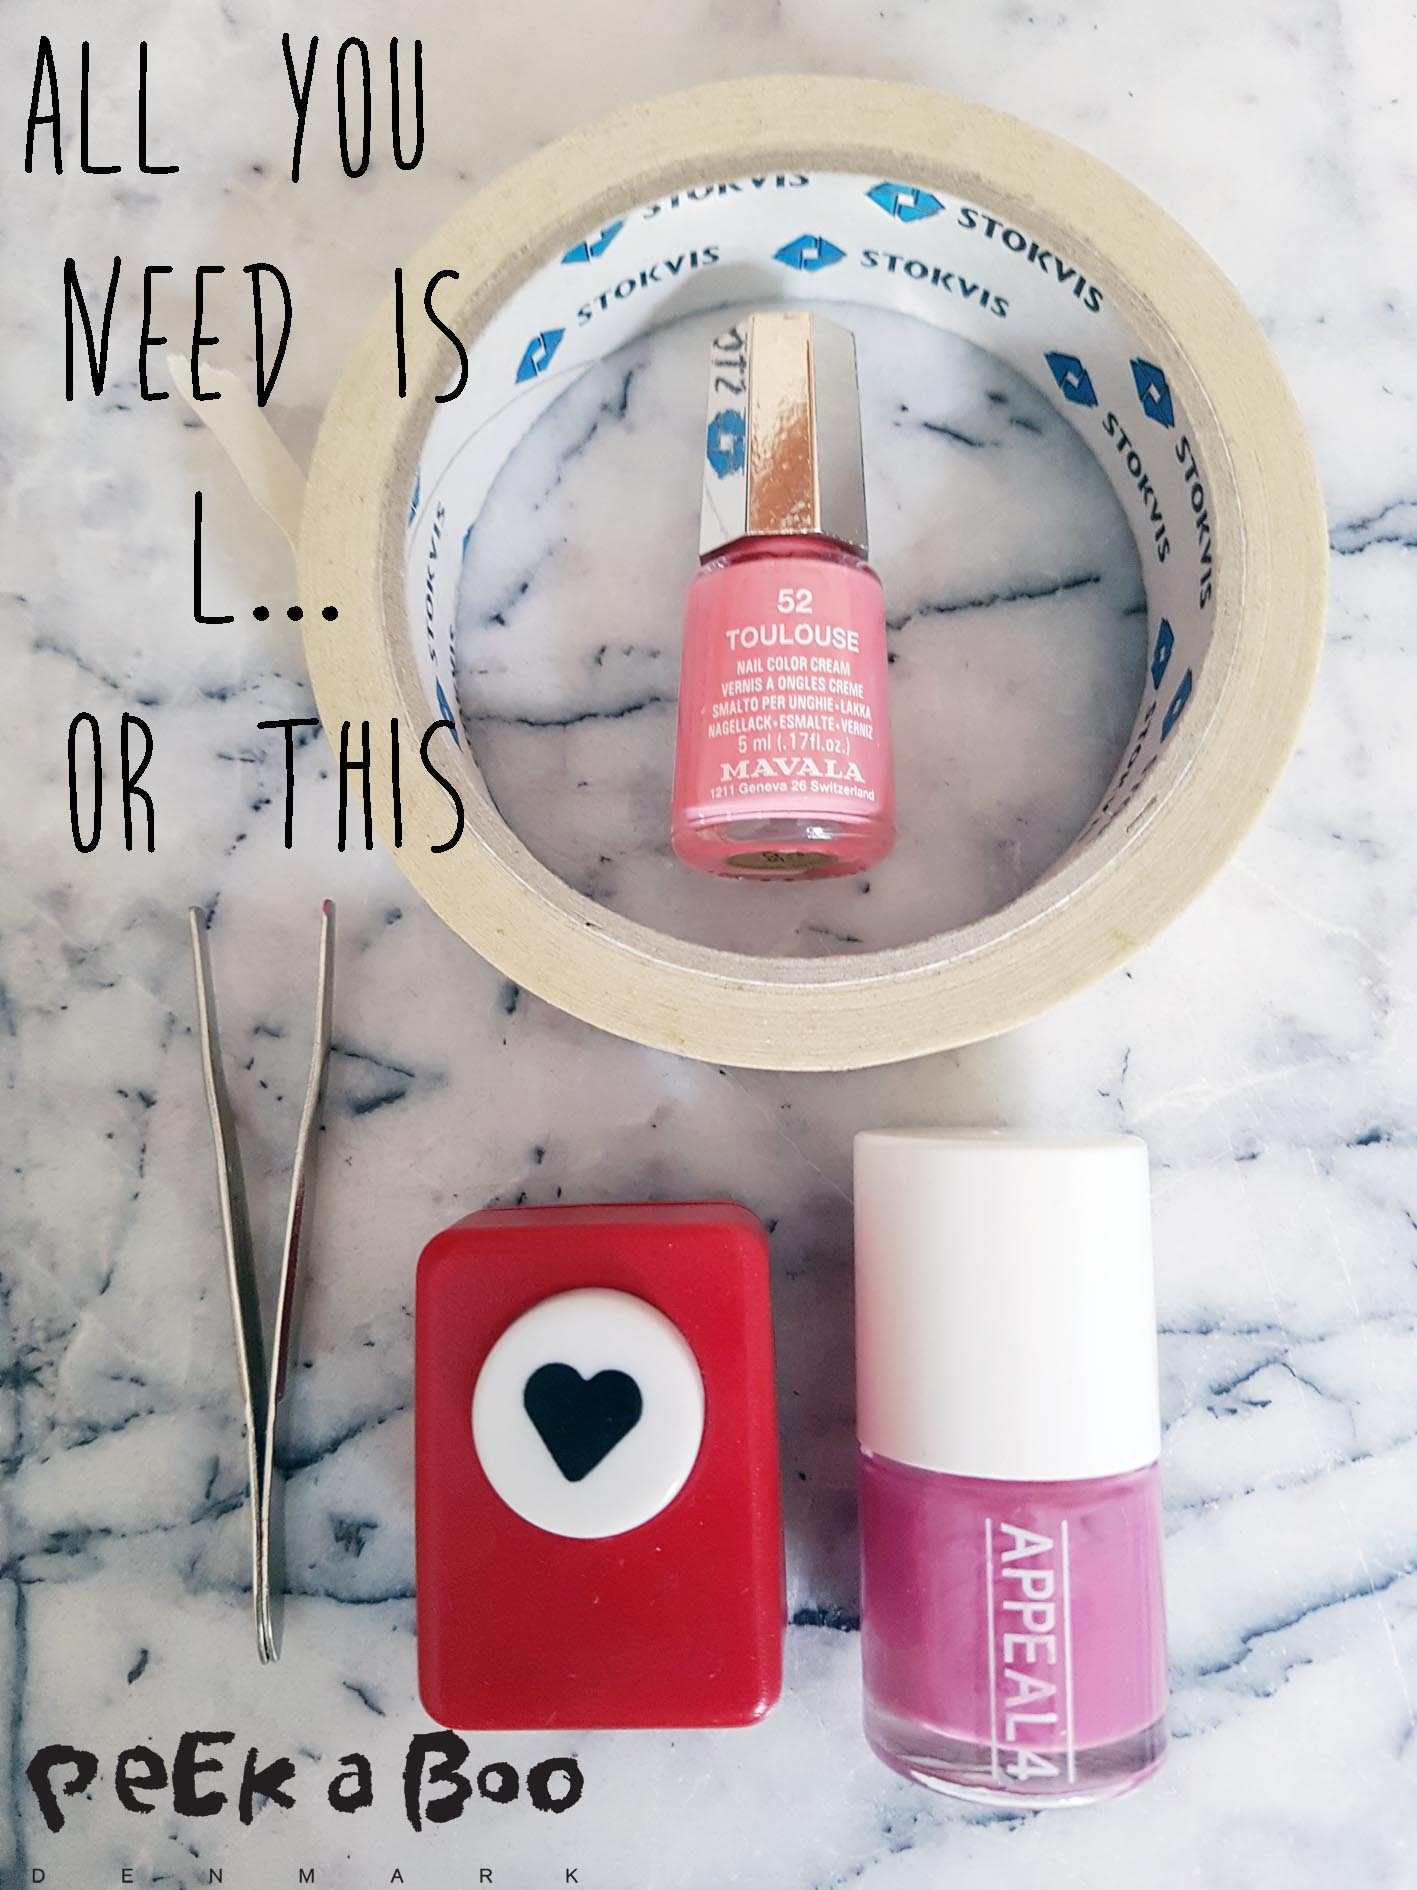 materials for the heart nails.